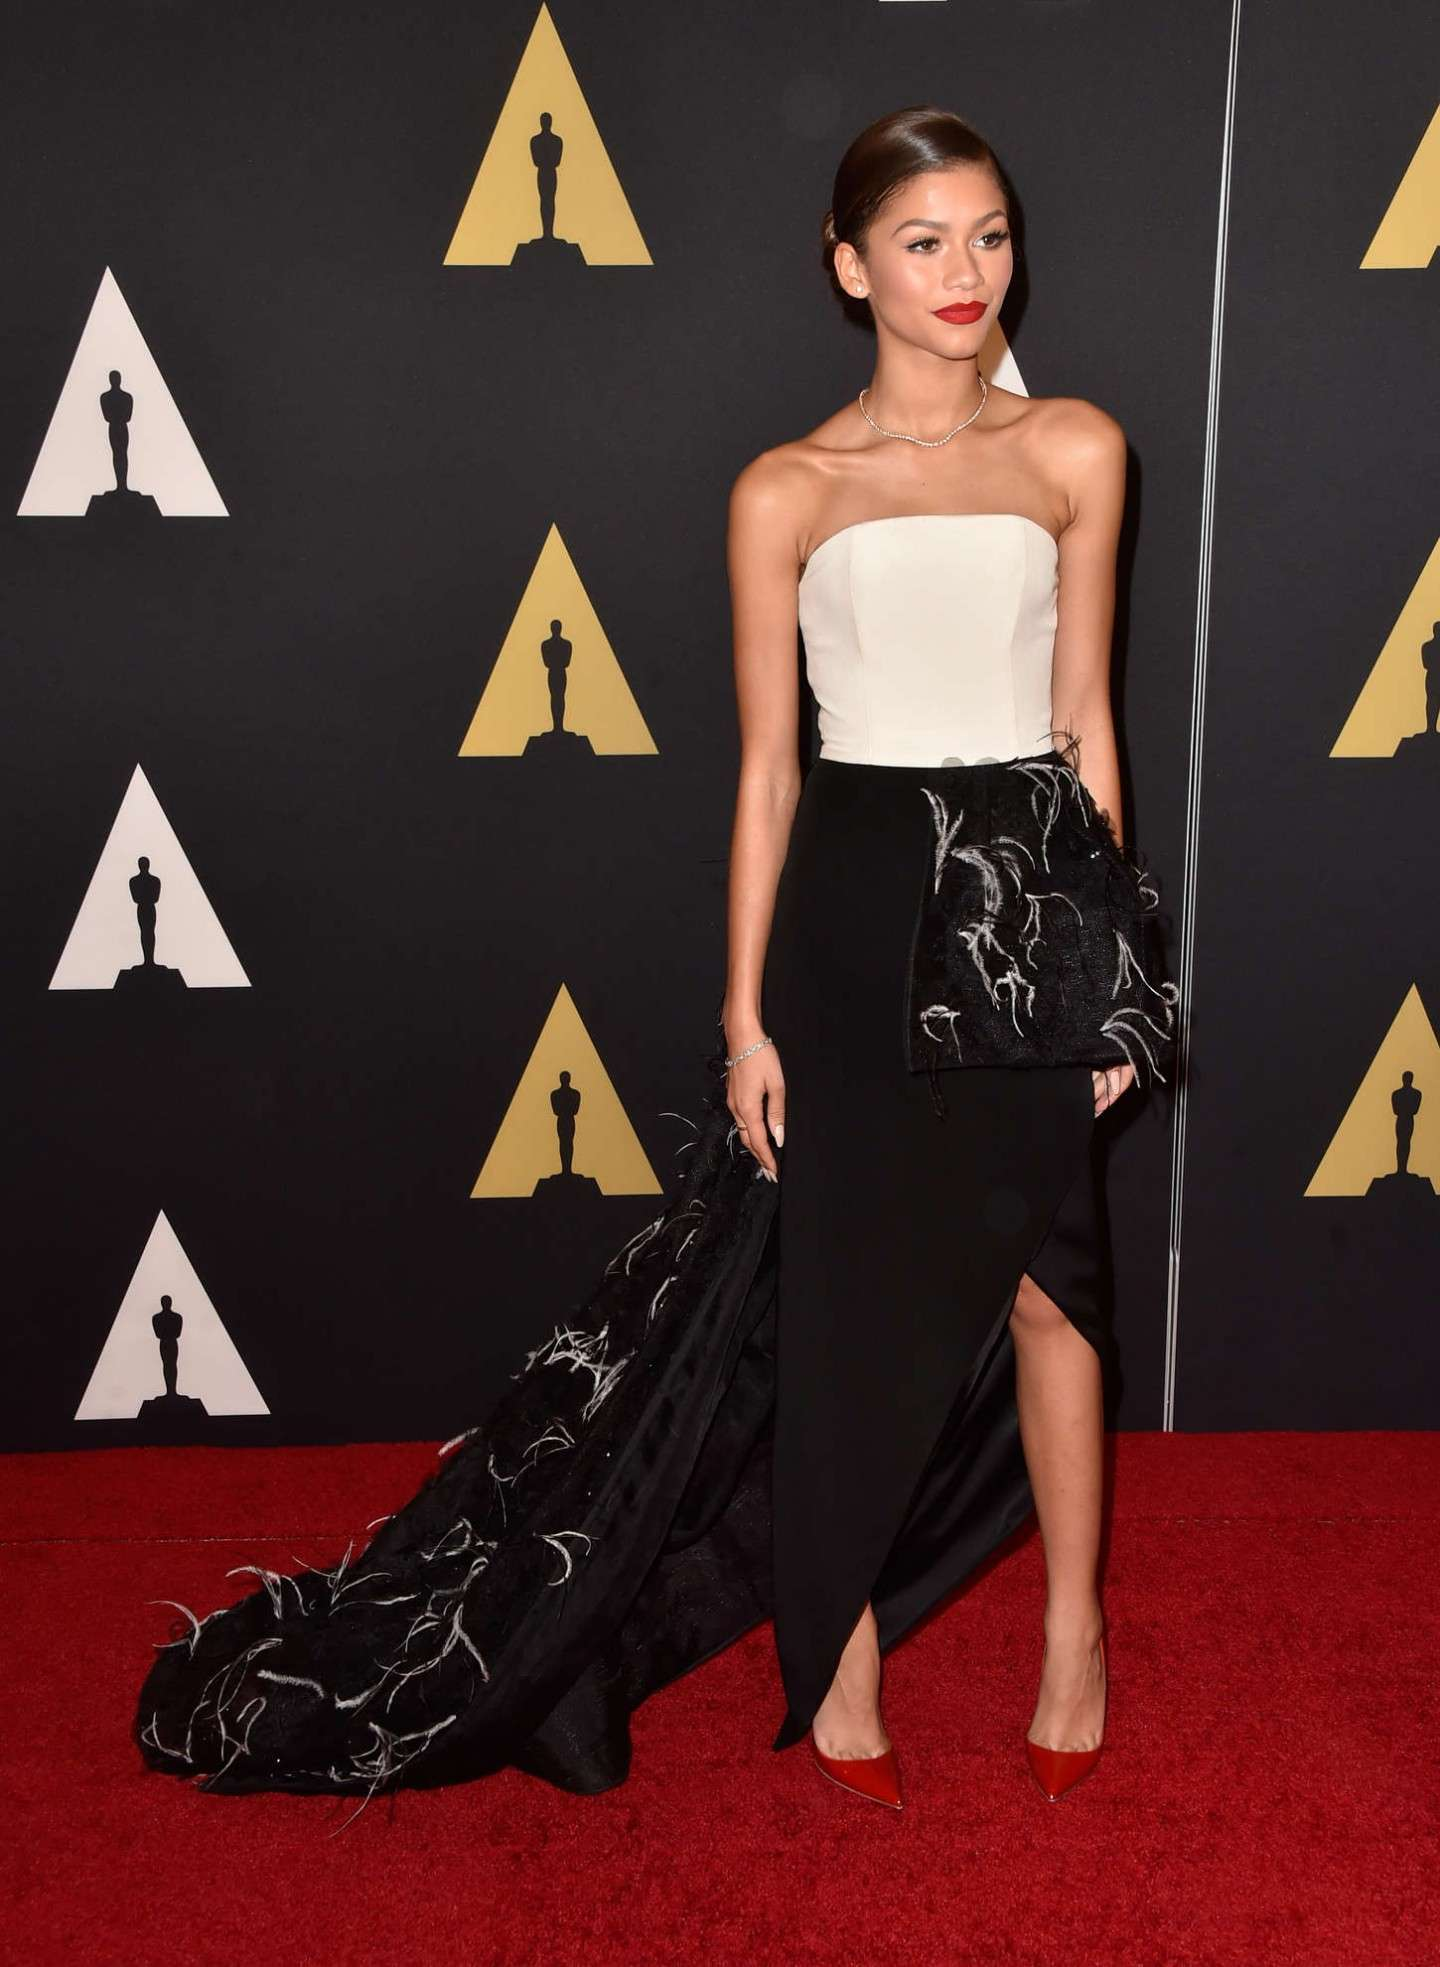 Elegante Zendaya sul red carpet